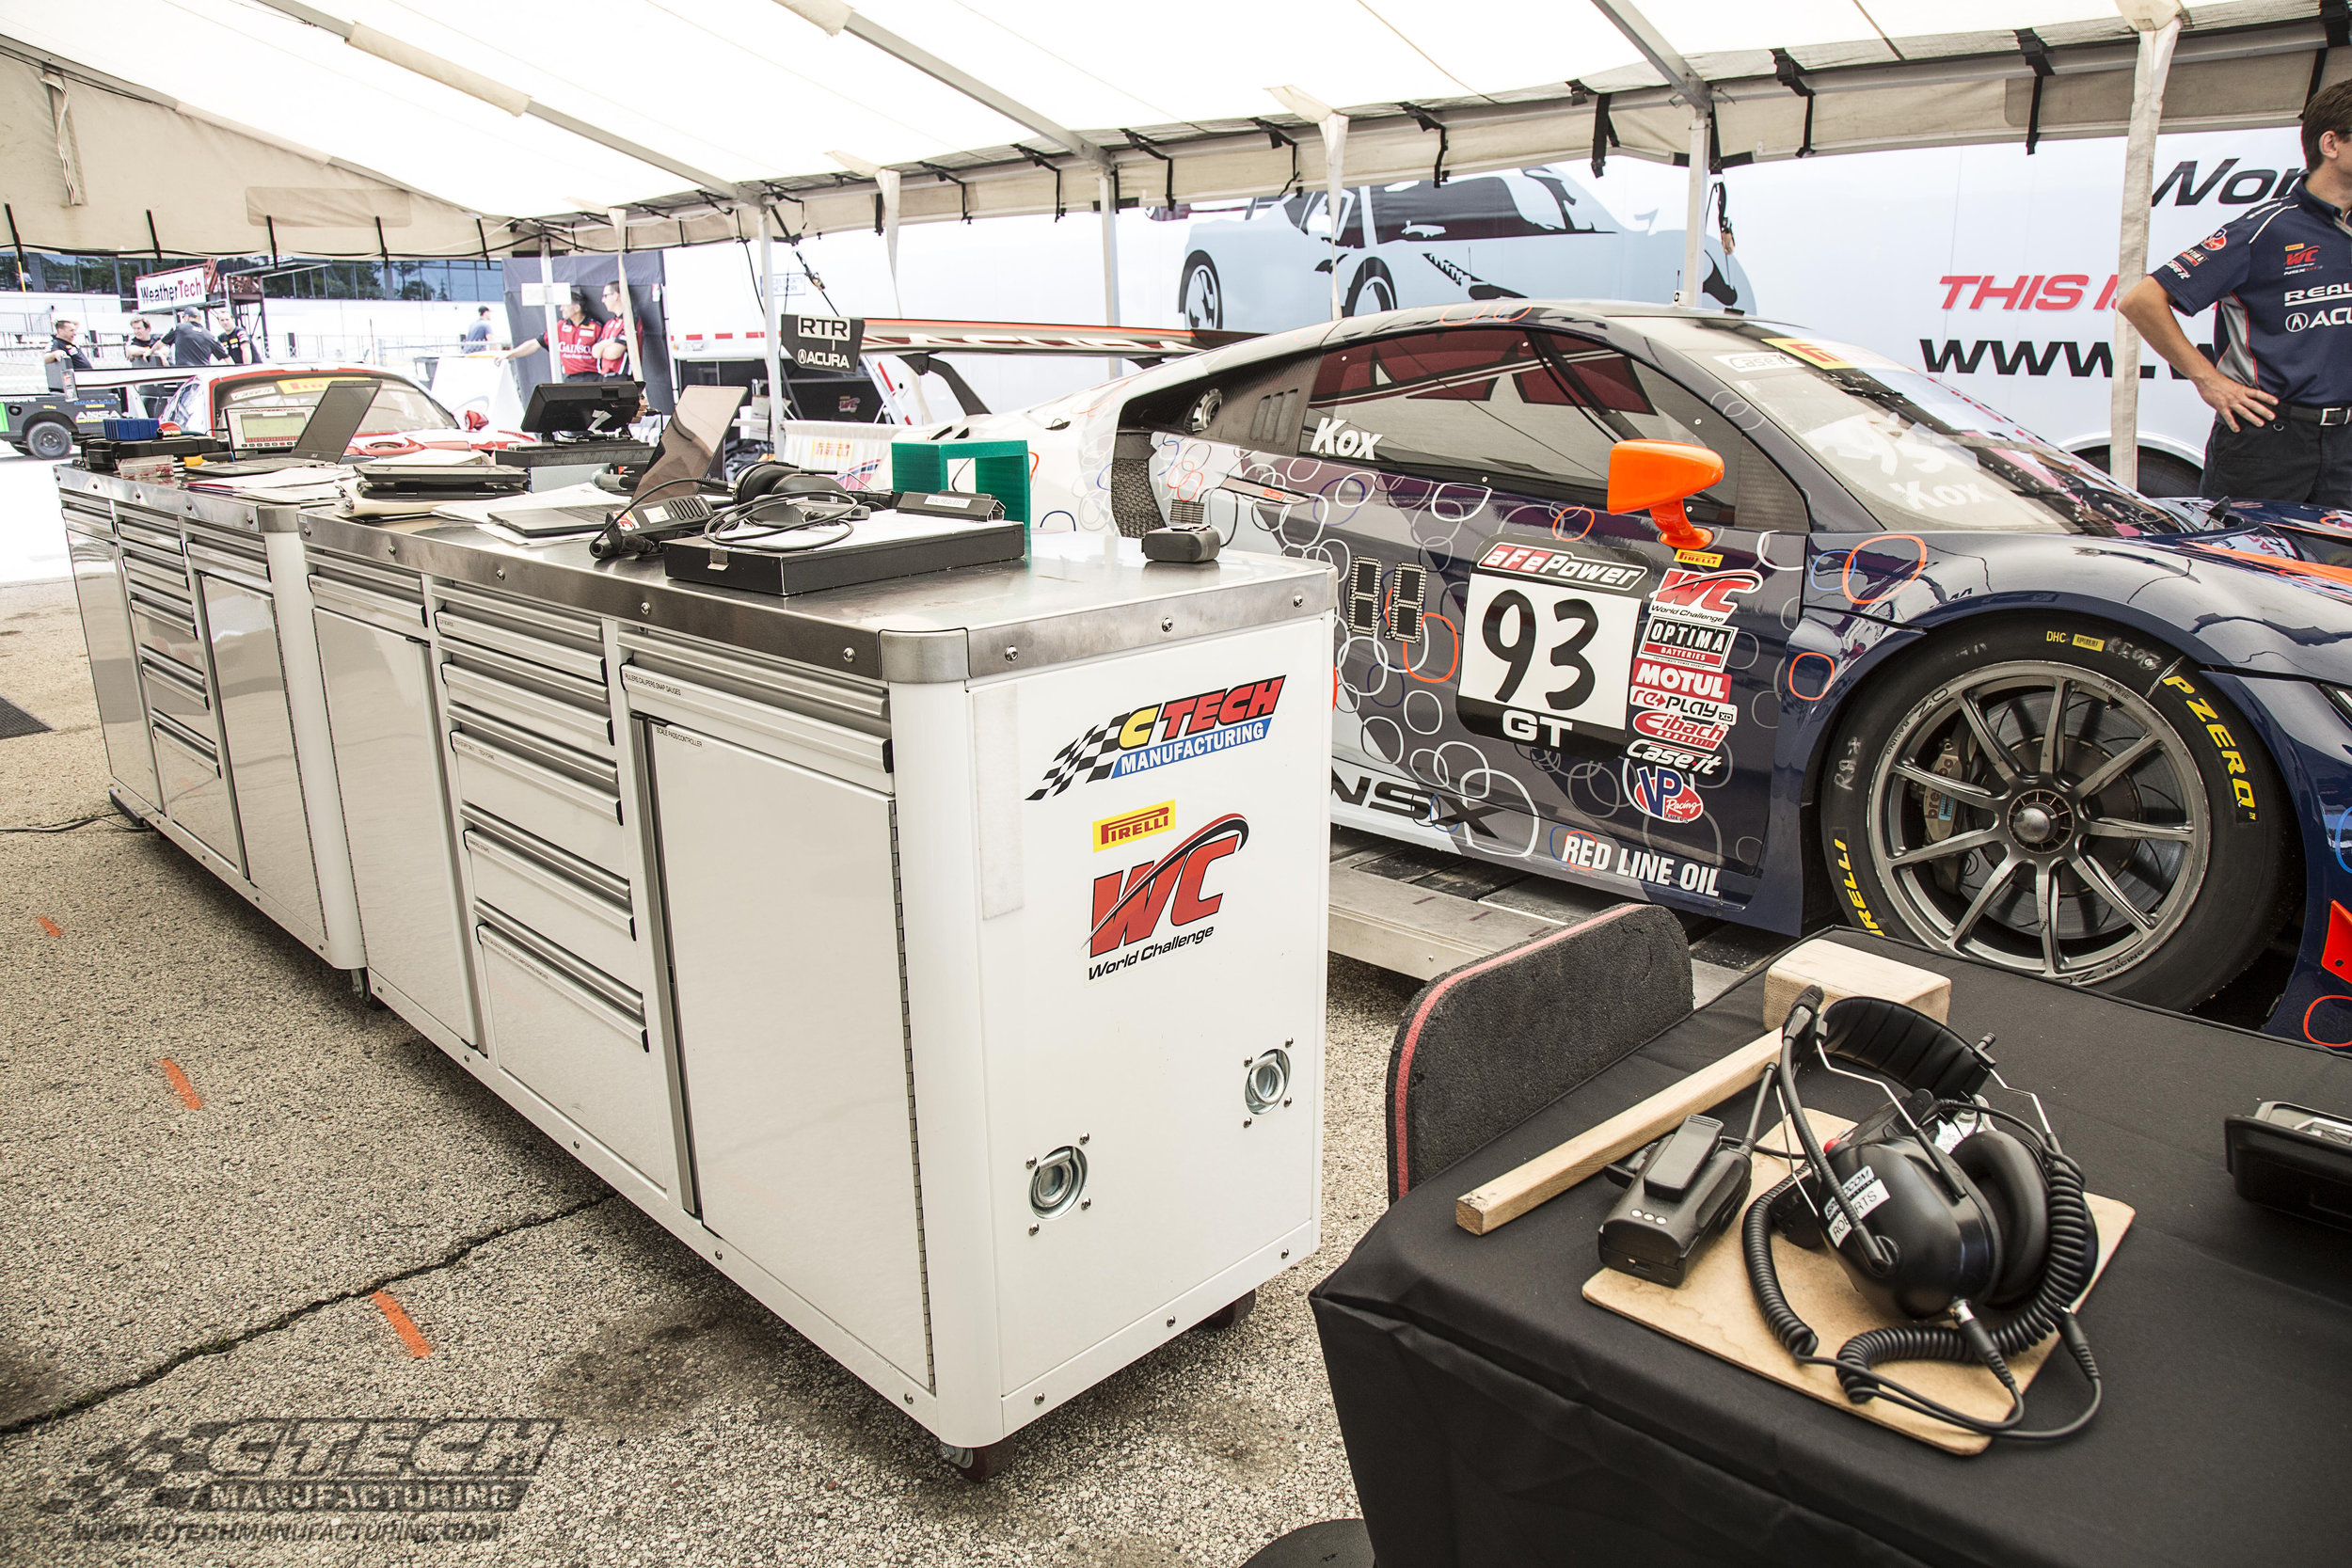 CTECH Caster Carts are found at every end of the racing paddock. This one is used by SCCA World Challenge officials in the technical inspection area. As you can see, the heavy-duty aluminum worktop get plenty of use!